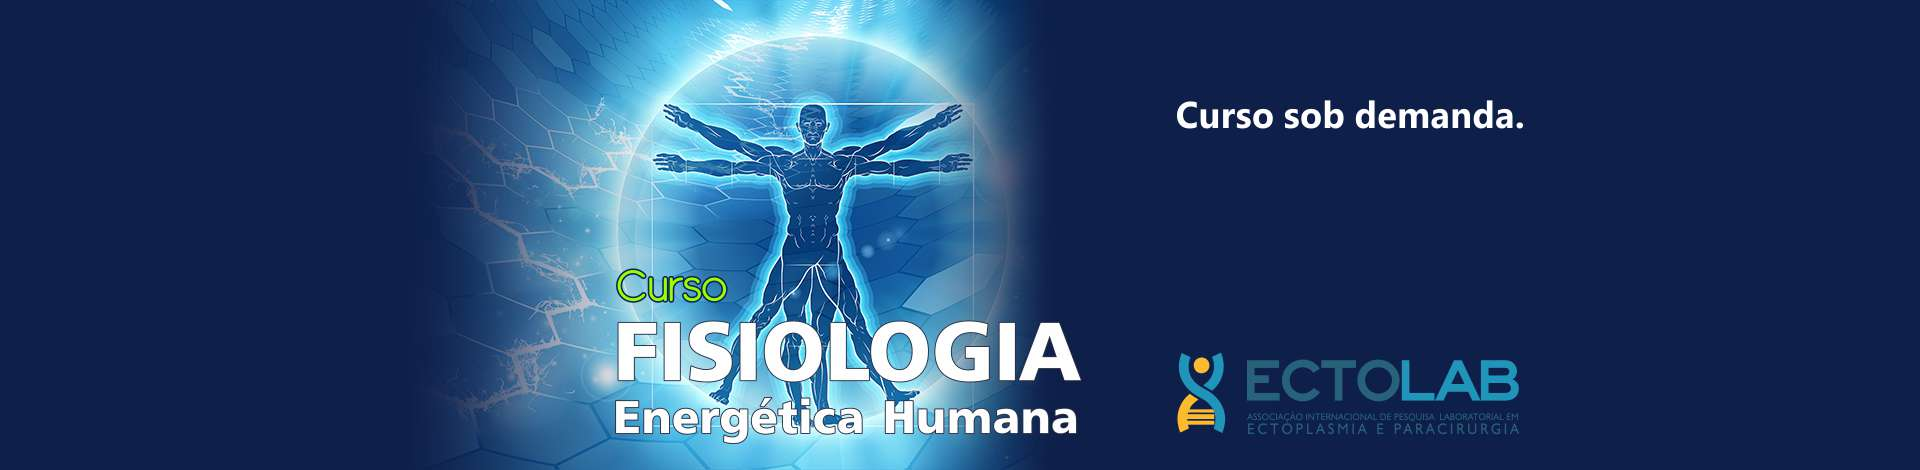 Fisiologia Energetica Humana – banner site_2